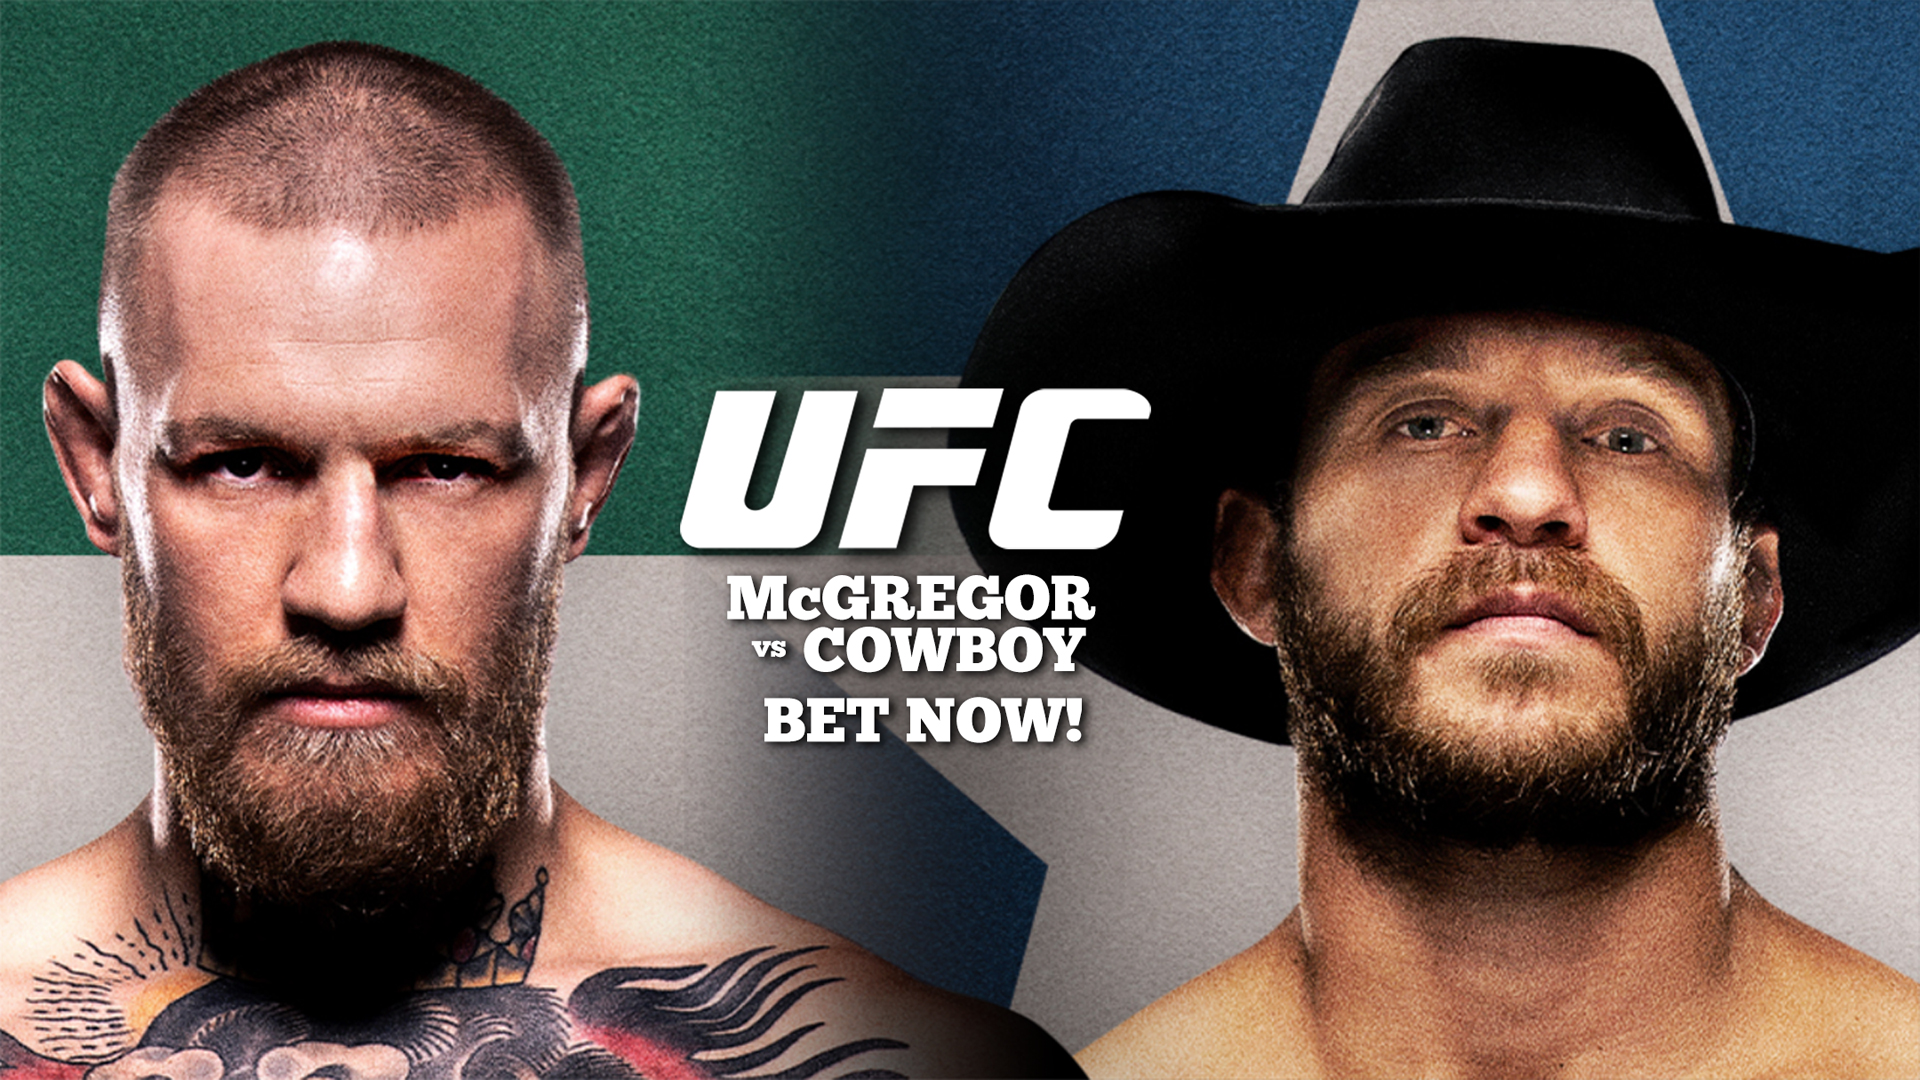 ufc-246-bet-on-conor-mcgregor-vs-donald-cerrone-bets-odds-and-bonus